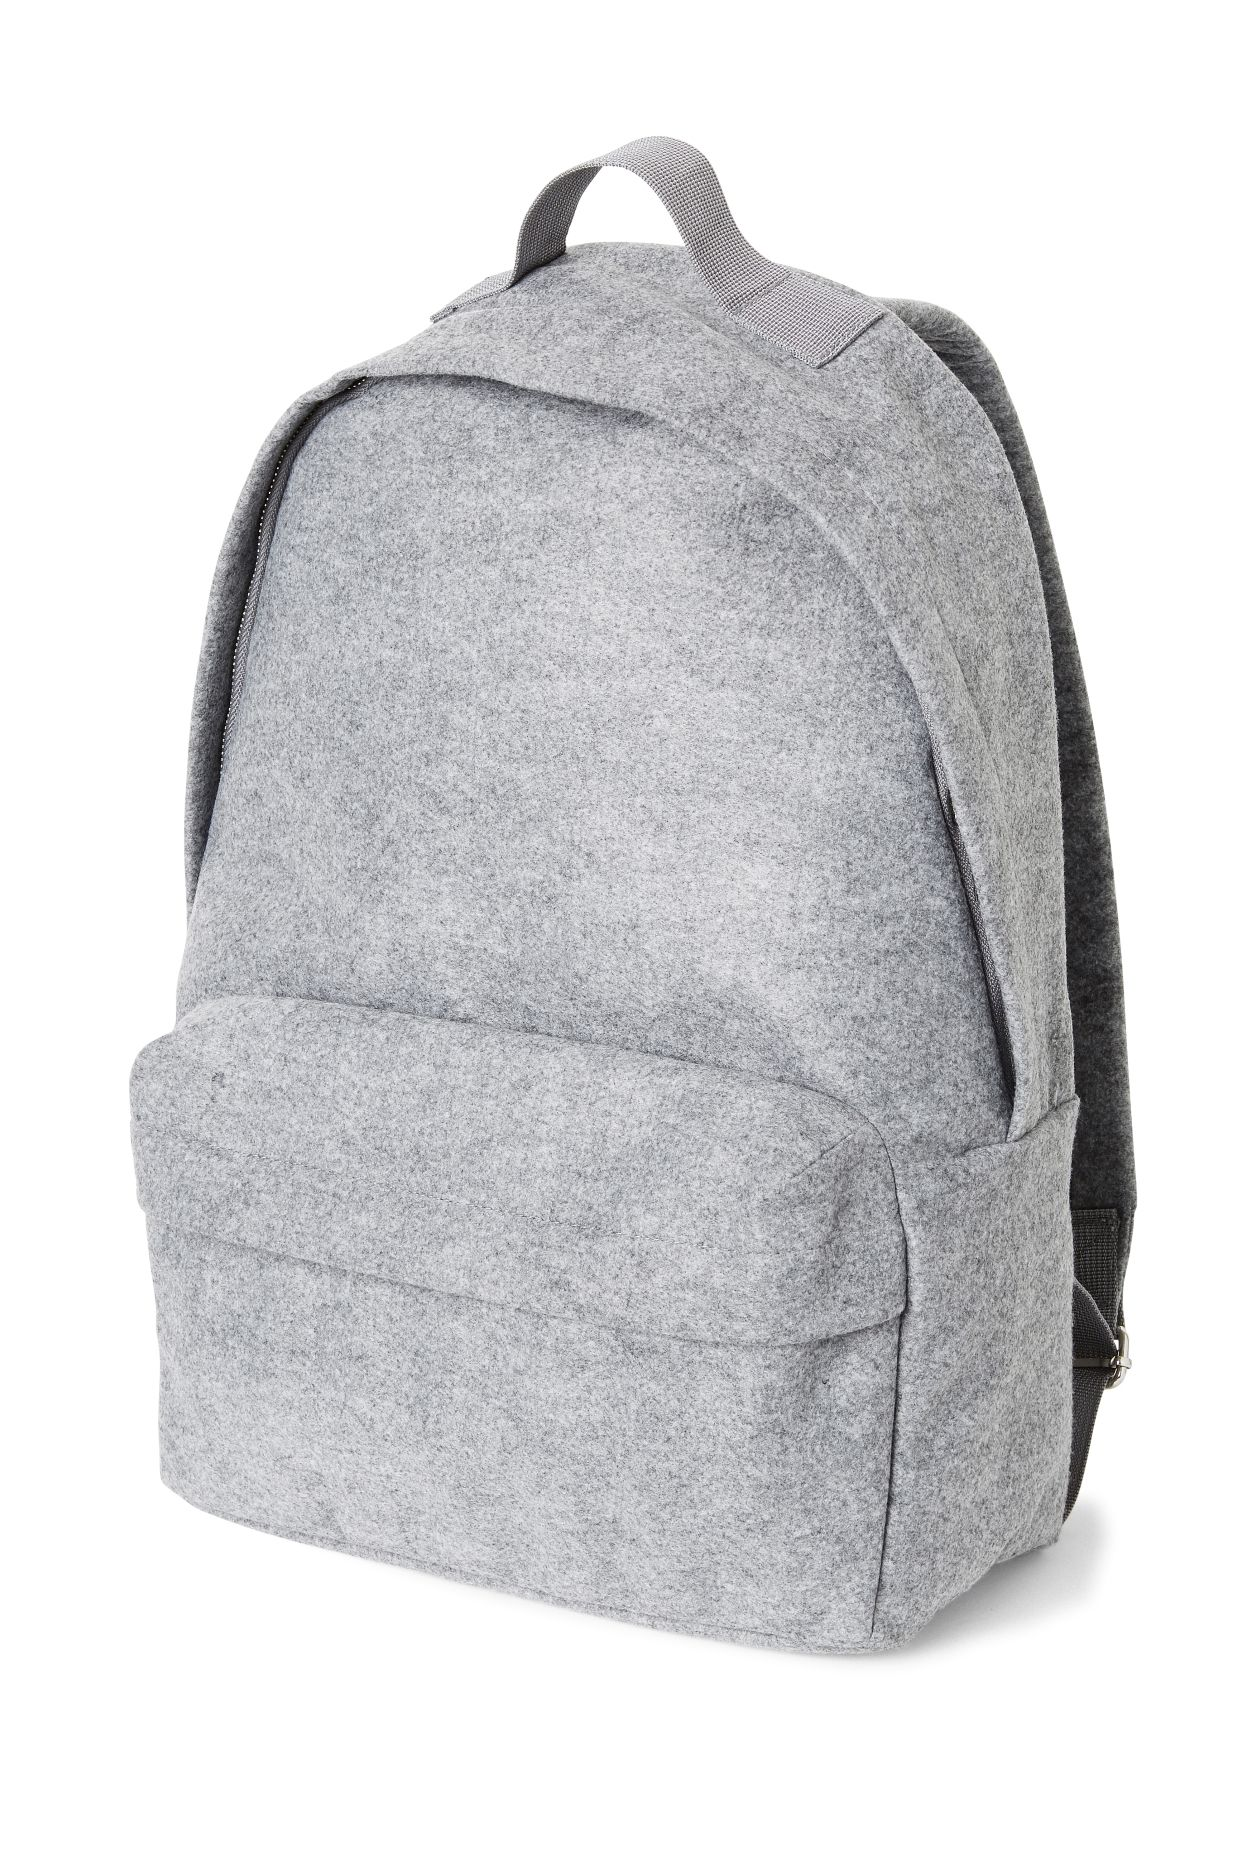 Weekday Lean Backpack - Grey Outlet New Arrival Countdown Package Cheap Price Lowest Price Cheap Price Outlet Low Price vMBI54l